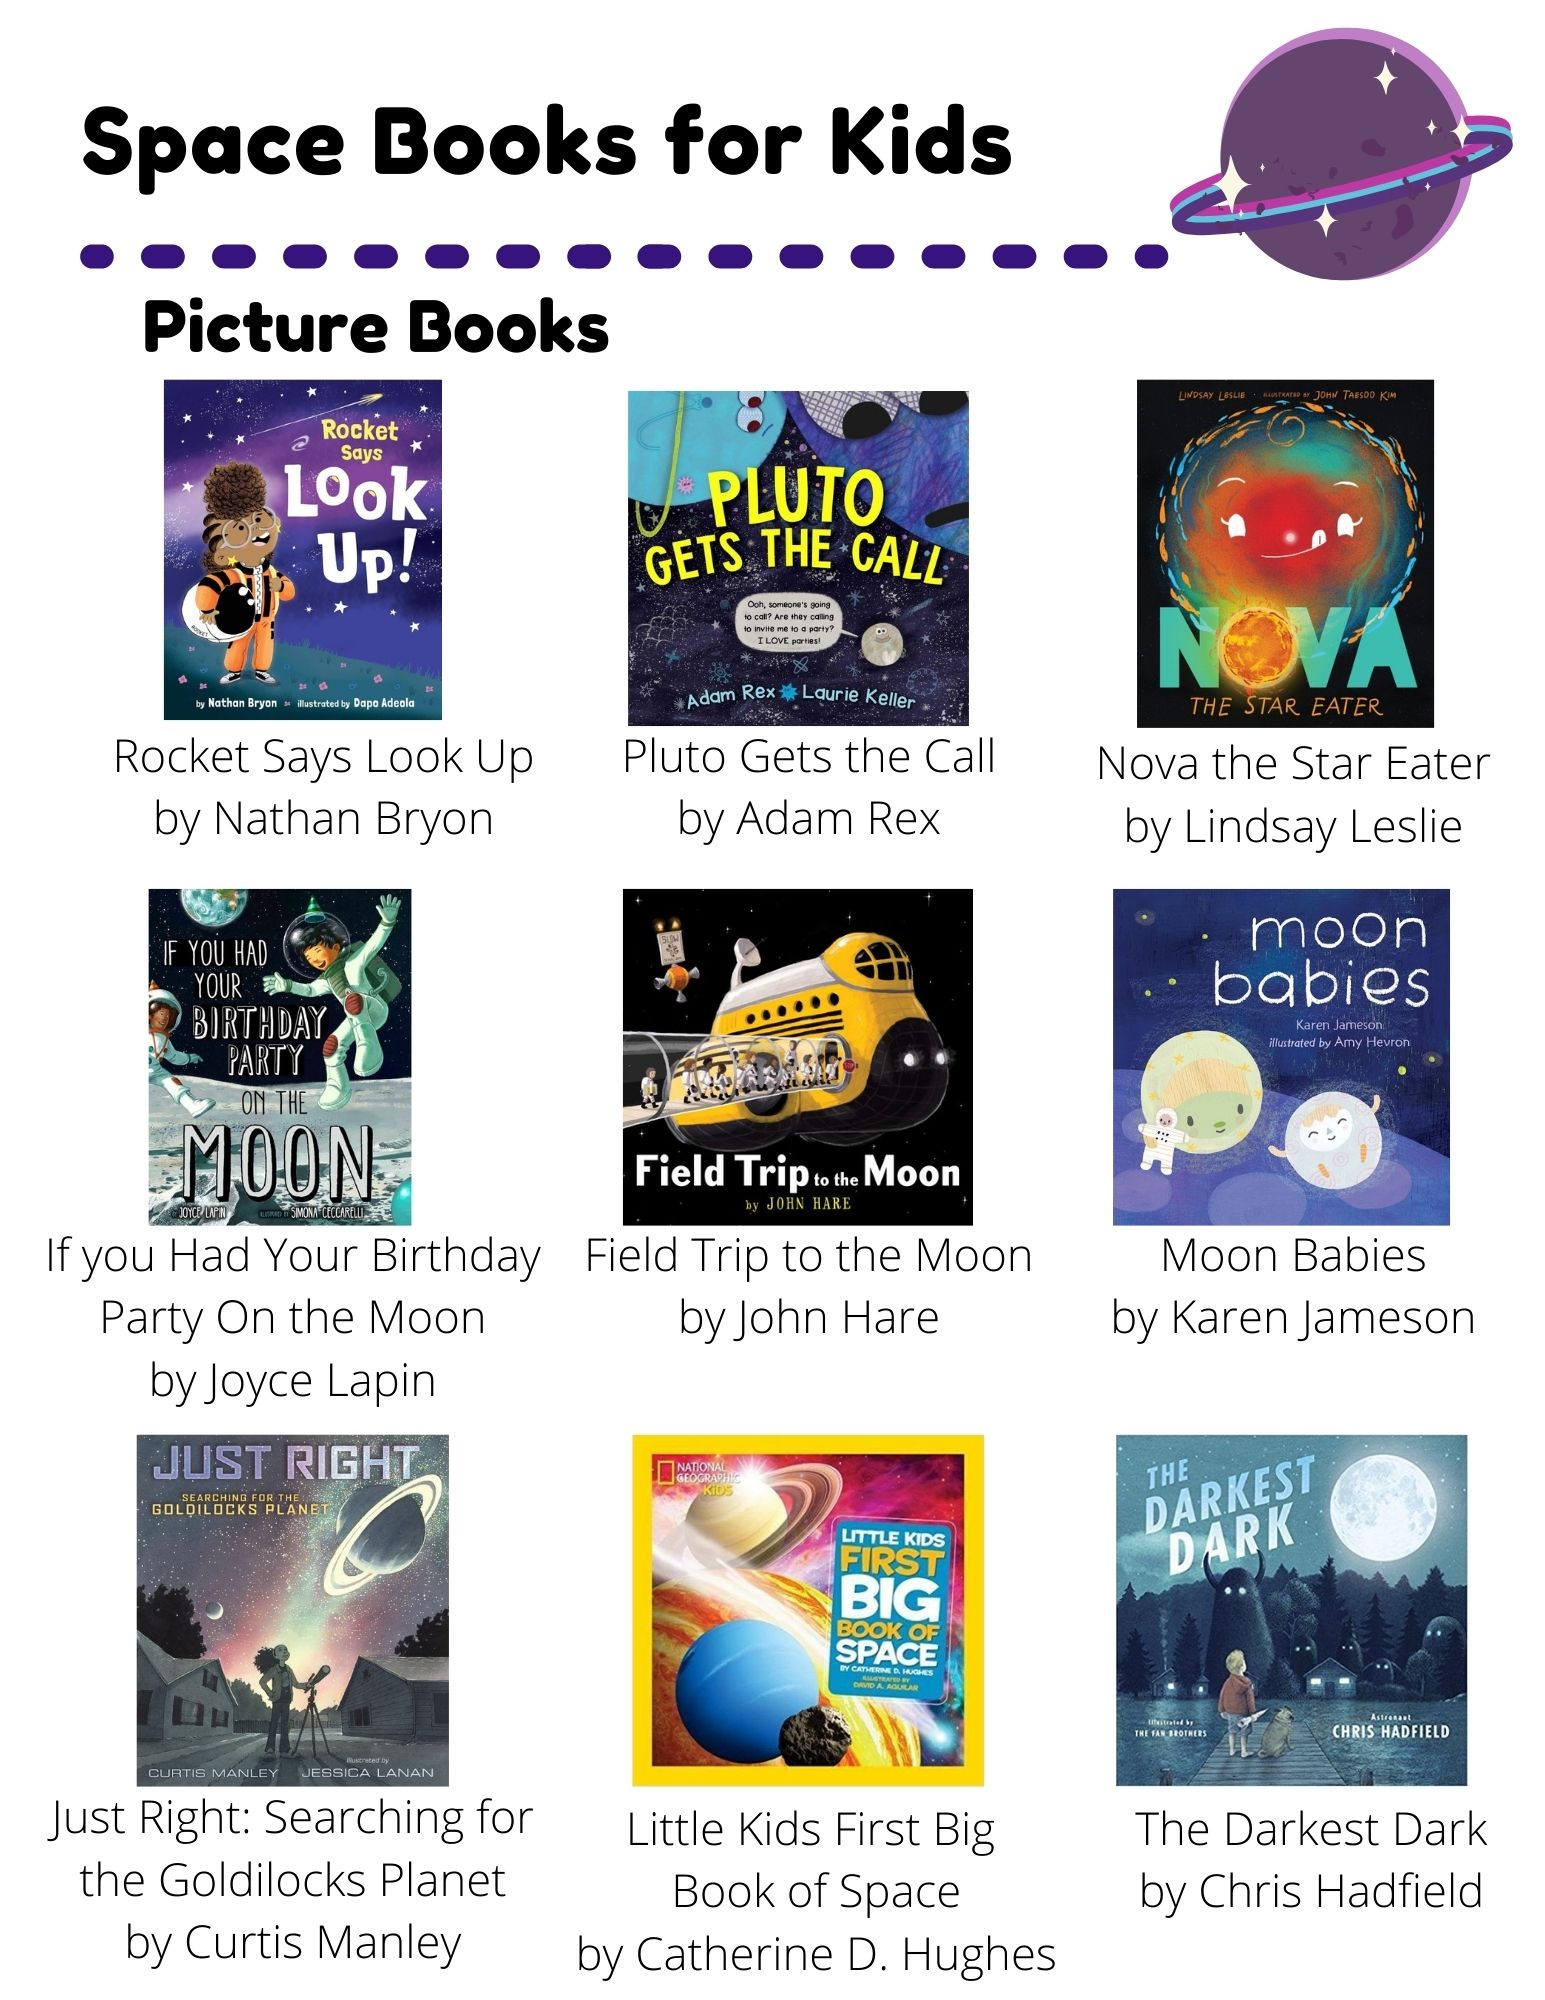 Space Books for Kids: Picture Books: Rocket Says Look Up by Nathan Bryon, Pluto Gets the Call by Adam Rex, Nova the Star Eater by Lindsay Leslie, If you Had Your Birthday Party On the Moon by Joyce Lapin, Field Trip to the Moon by John Hare, Moon Babies by Karen Jameson, Just Right: Searching for the Goldilocks Planet by Curtis Manley, Little Kids First Big  Book of Space by Catherine D. Hughes, The Darkest Dark by Chris Hadfield. Chapter Books: Code your own Adventure by Max Wainewright, Sadiq and the  Desert Star by Siman Nuurali, Midnight on the Moon by Mary Pope Osborne, Mouse in Space by Geronimo Stilton, Planet Earth is Blue by Nicole Panteleakos, Cosmoe's Weiner Getaway by Max Brallier. Non-Fiction Books: Mario and the Hole in the Sky by Elizabeth Rusch, The Race to Space by Ben Thompson, Surviving in Space by Ellen Lawrence.